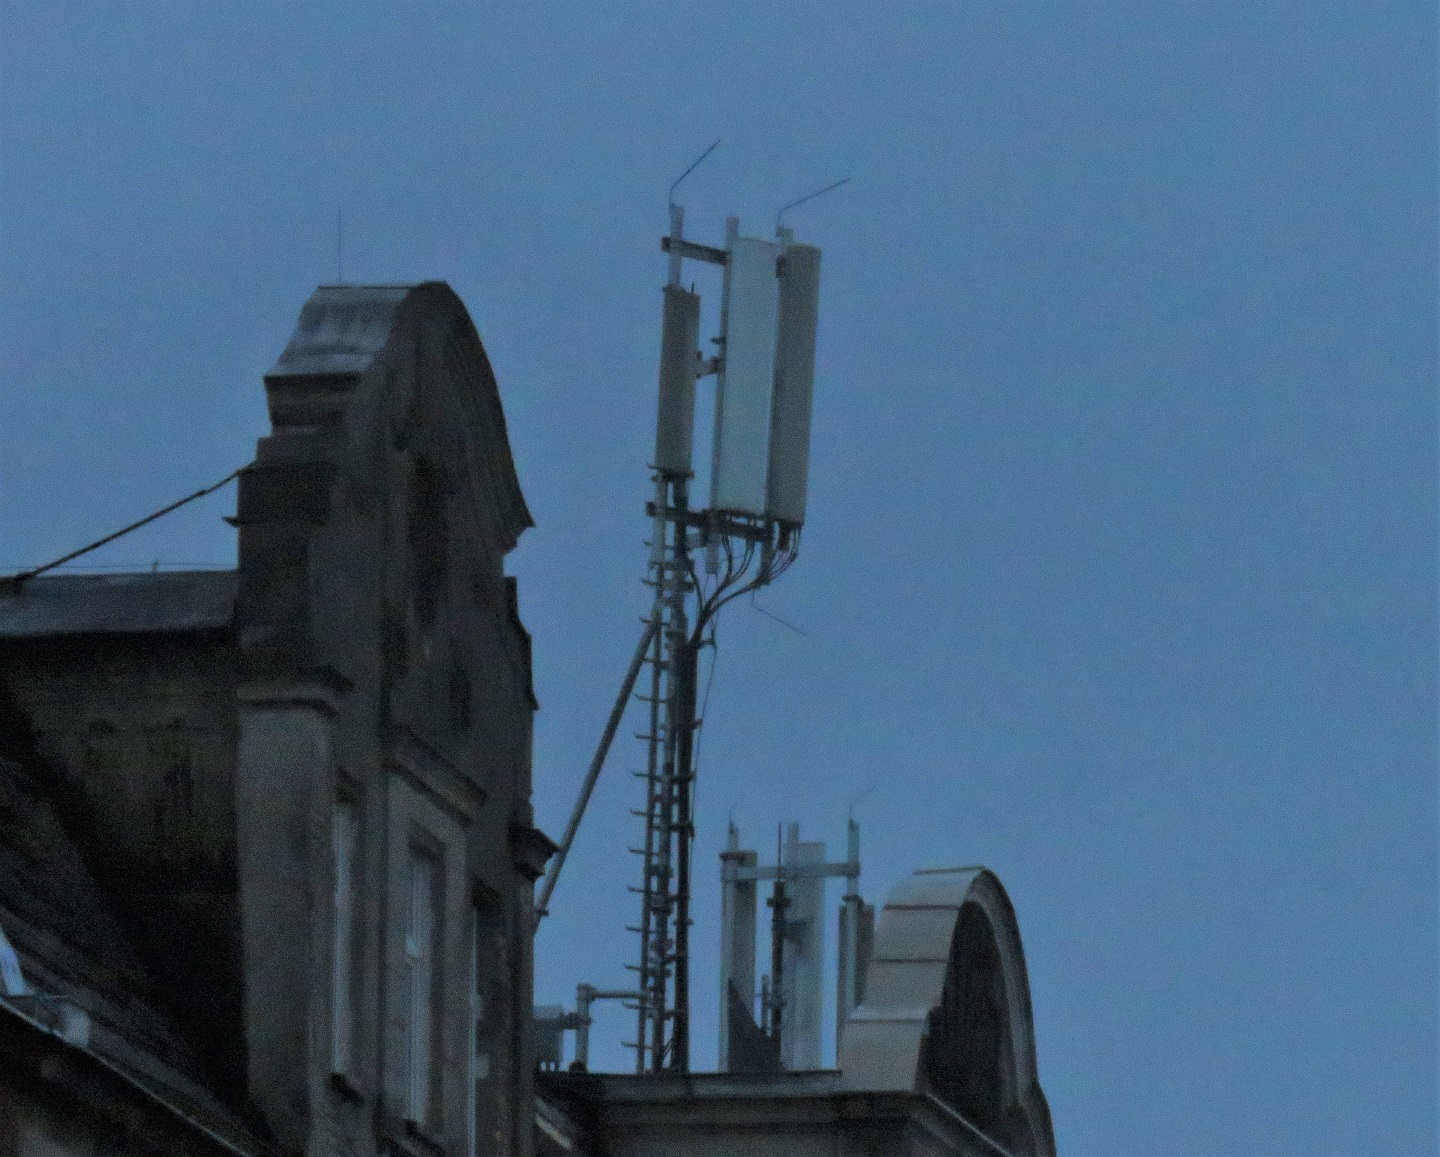 Orange and T-Mobile site with Huawei RRUs and various antennas.